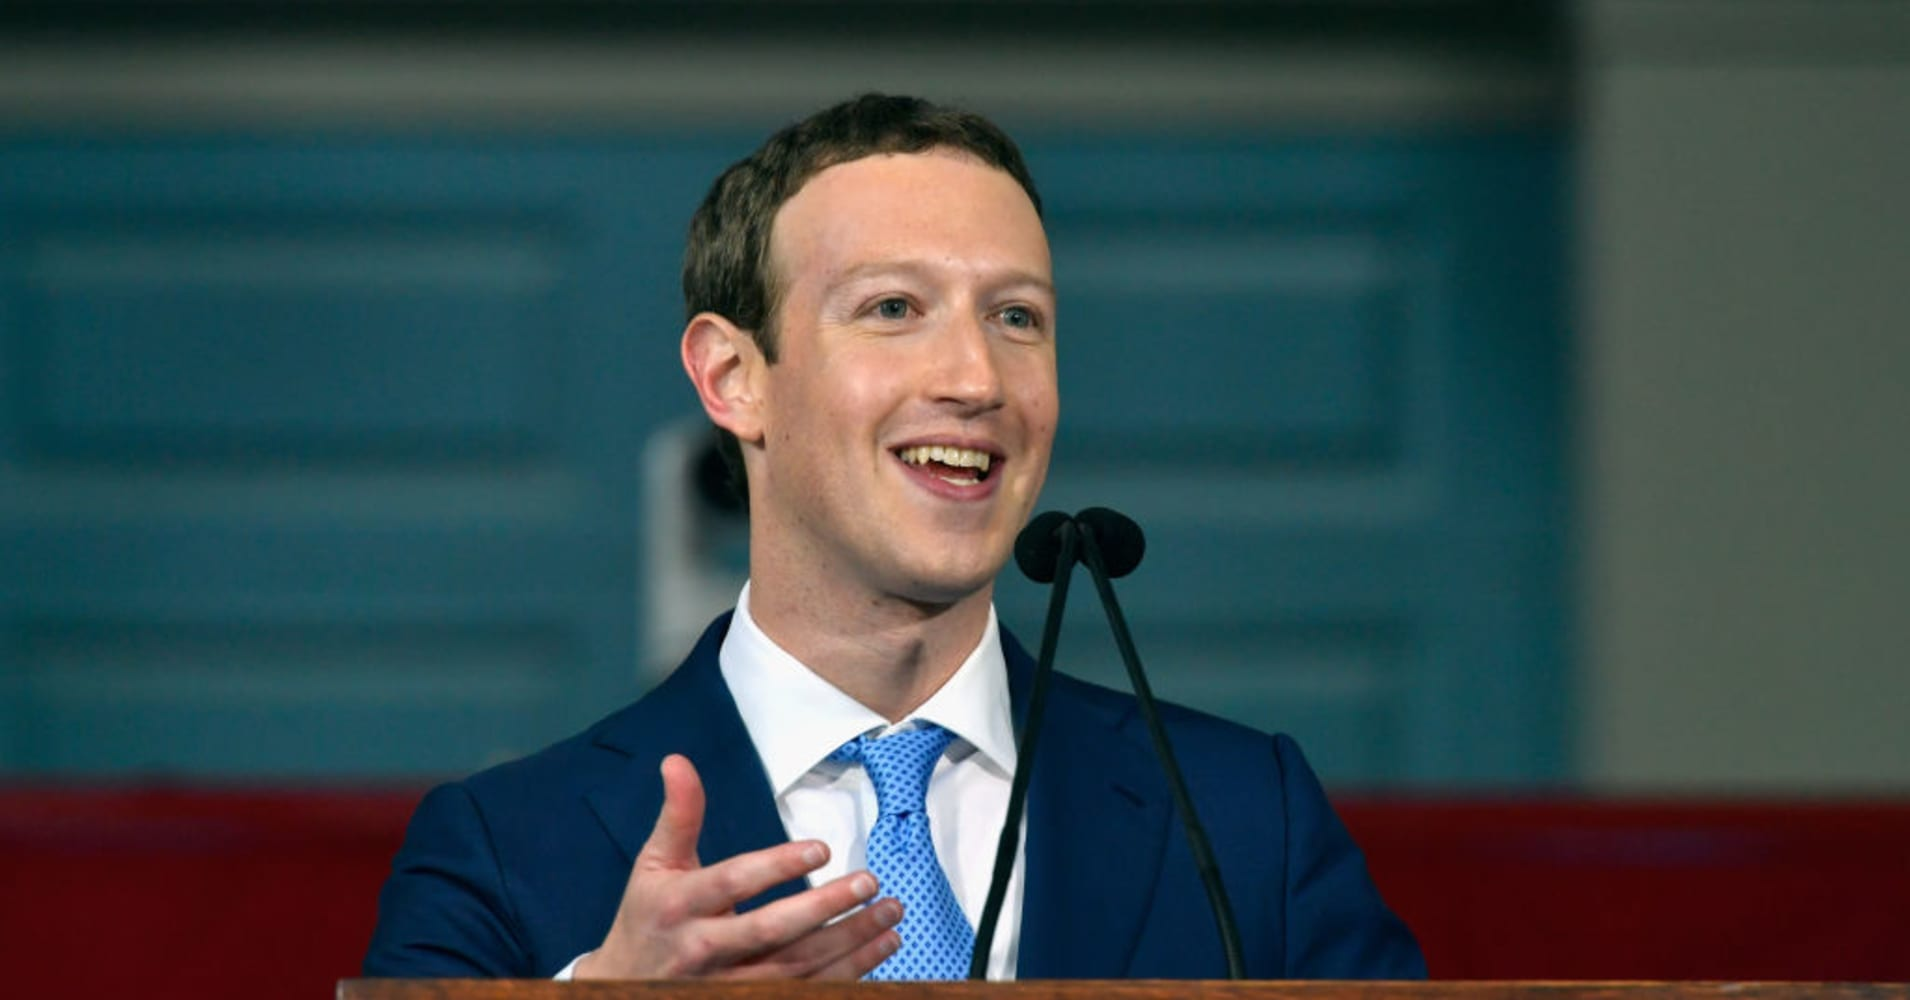 leadership attributes of mark zuckerberg Mark zuckerberg entrepreneur characteristics have allowed him to build facebook with 2 billion active users but behind being the 5th richest.